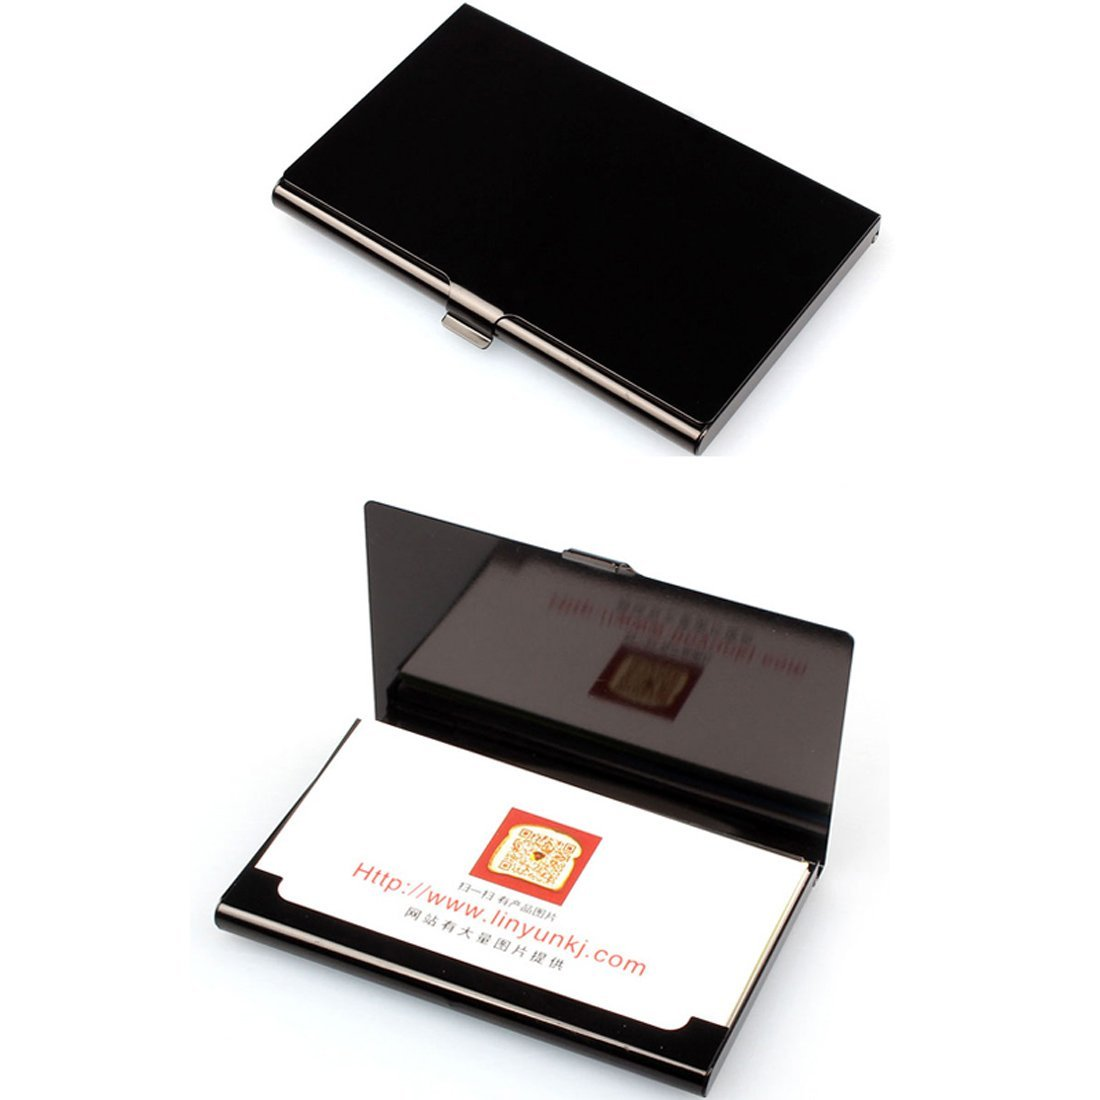 Business Card Wallet | Digital Marketing Singapore - Digital Marketing Singapore